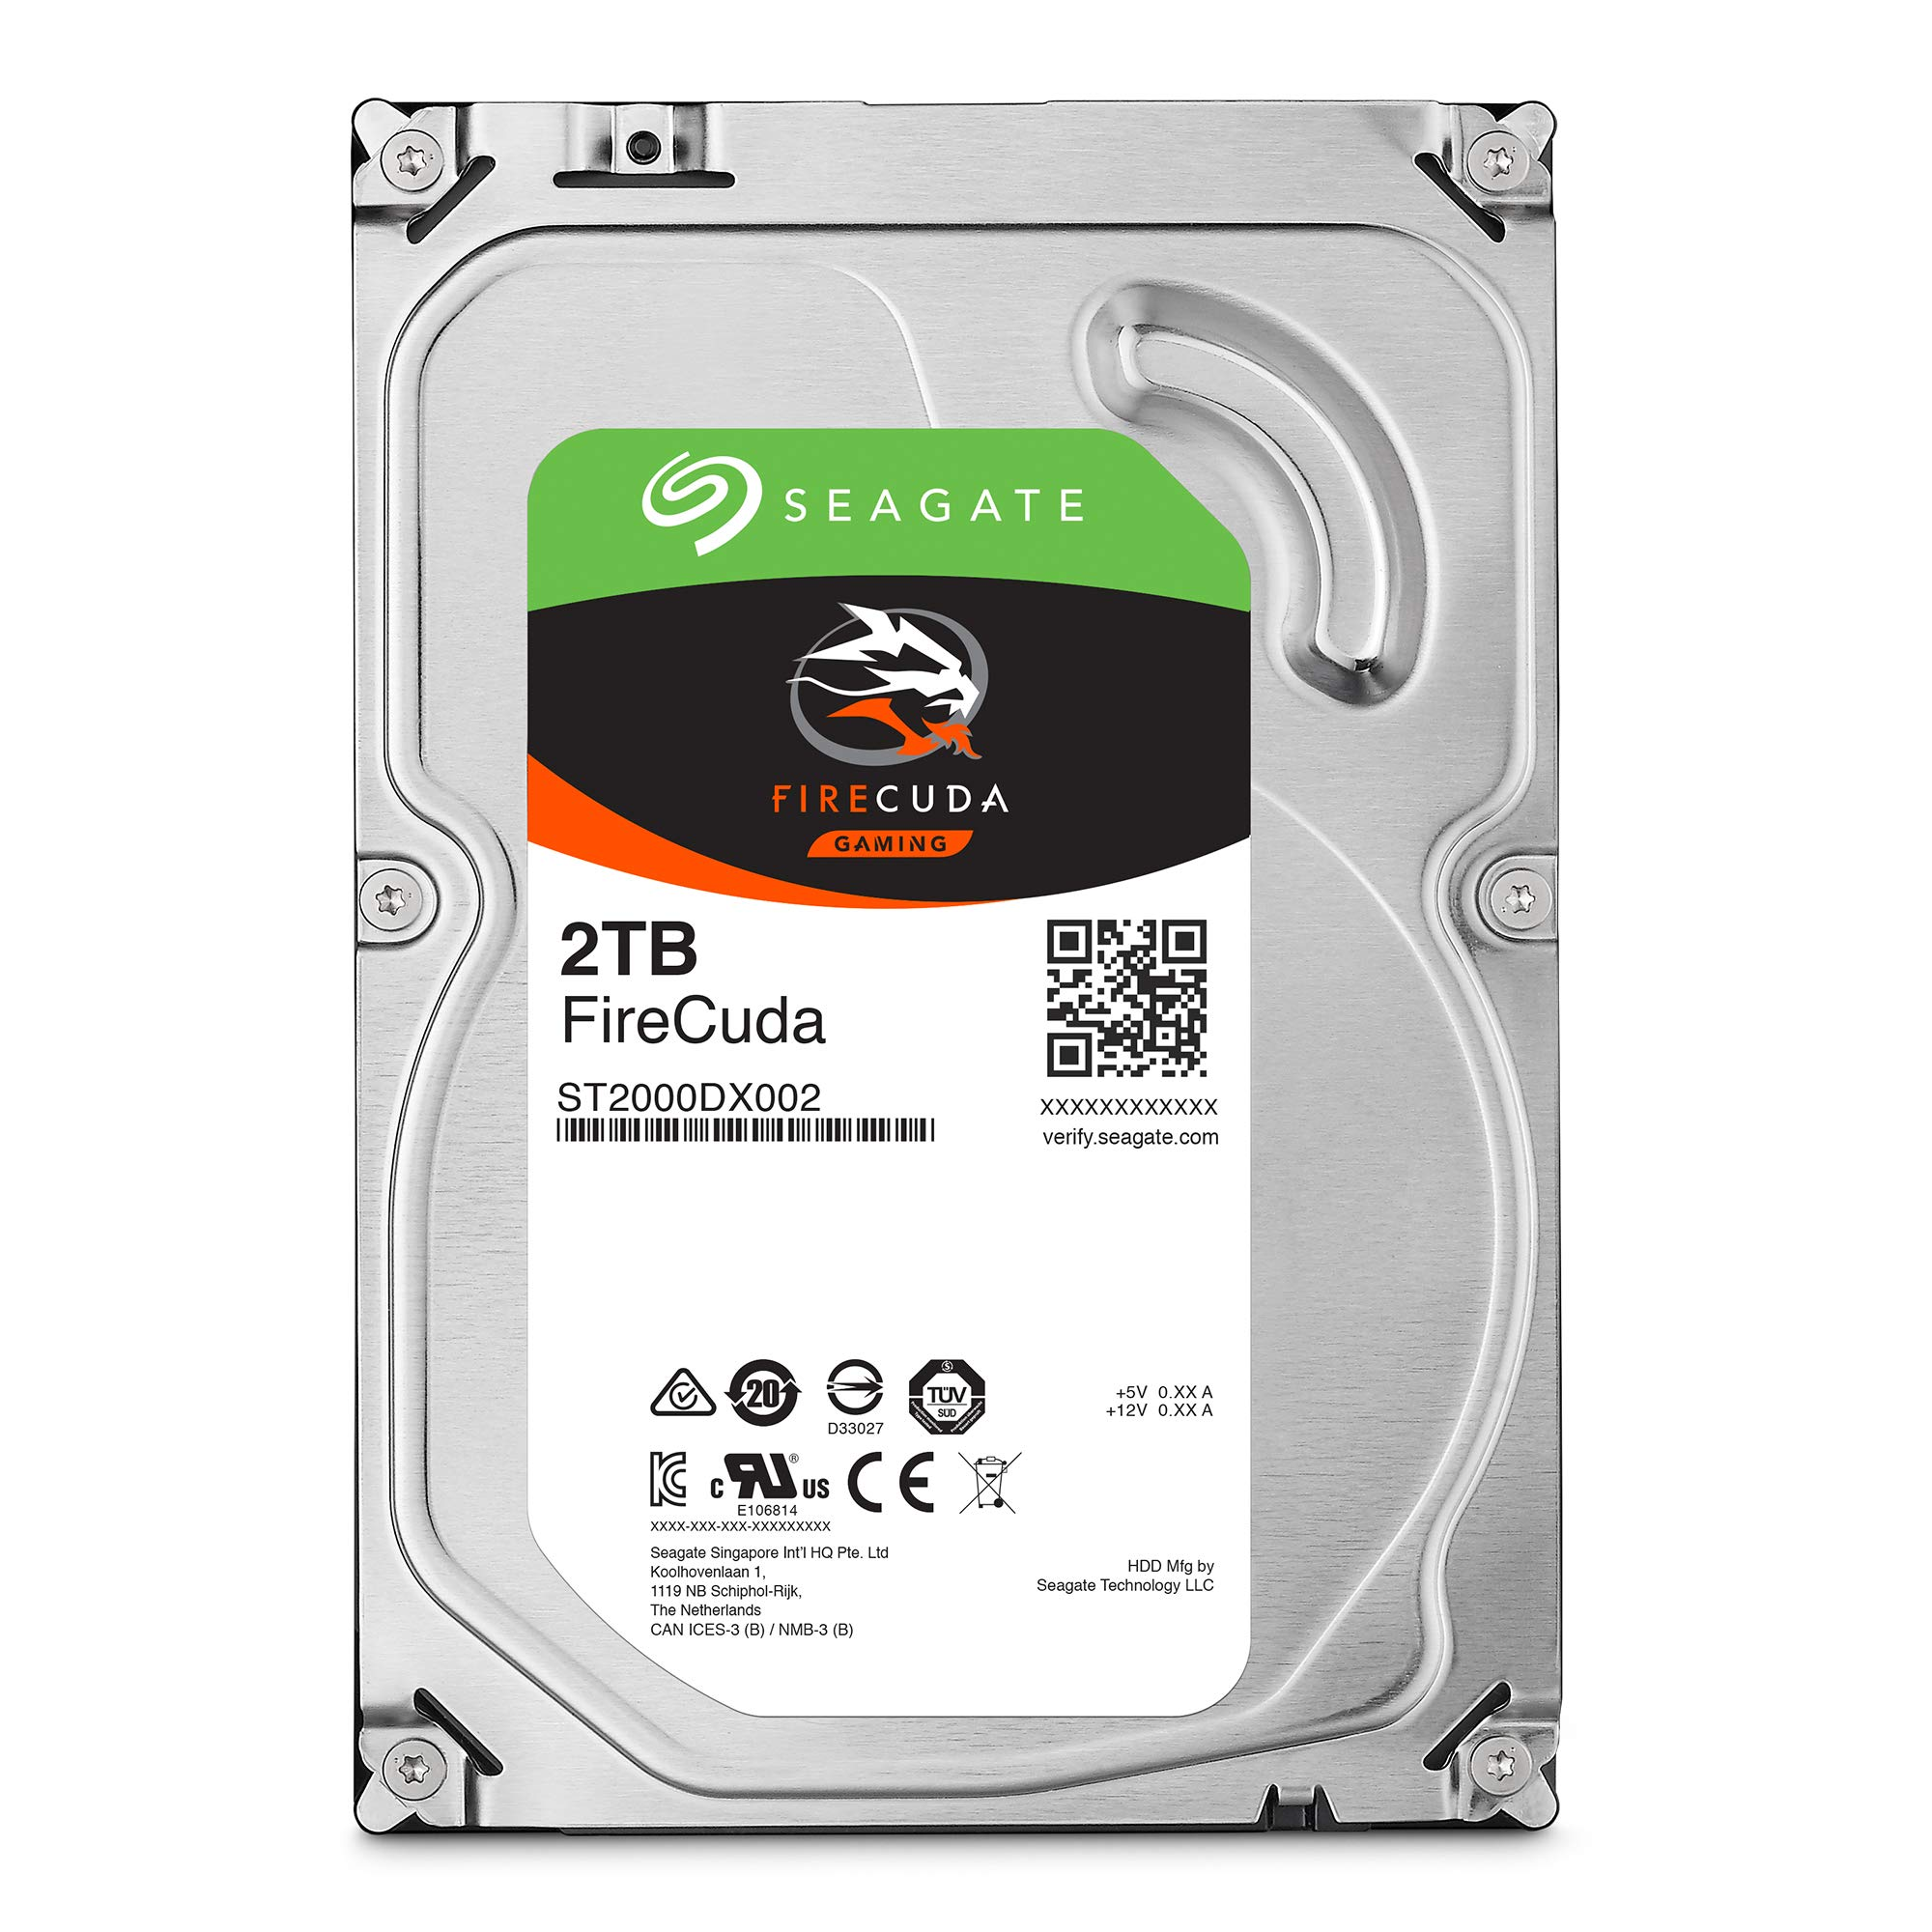 Seagate FireCuda 2TB Solid State Hybrid Drive Performance SSHD - 3.5 Inch SATA 6Gb/s Flash Accelerated for Gaming PC Desktop (ST2000DX002) by Seagate